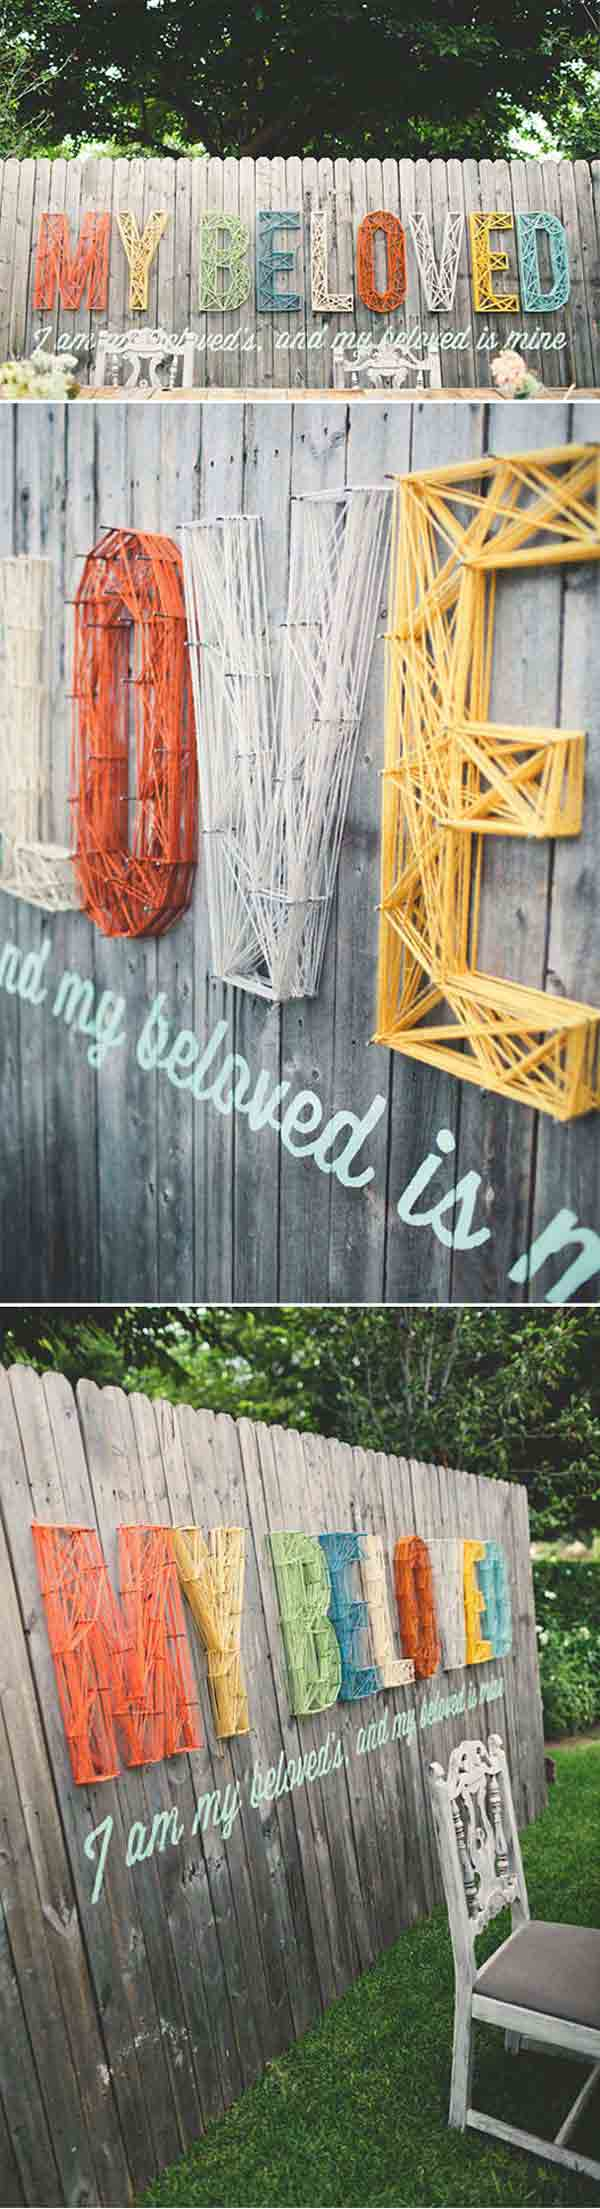 Best Top 23 Surprising Diy Ideas To Decorate Your Garden Fence This Month